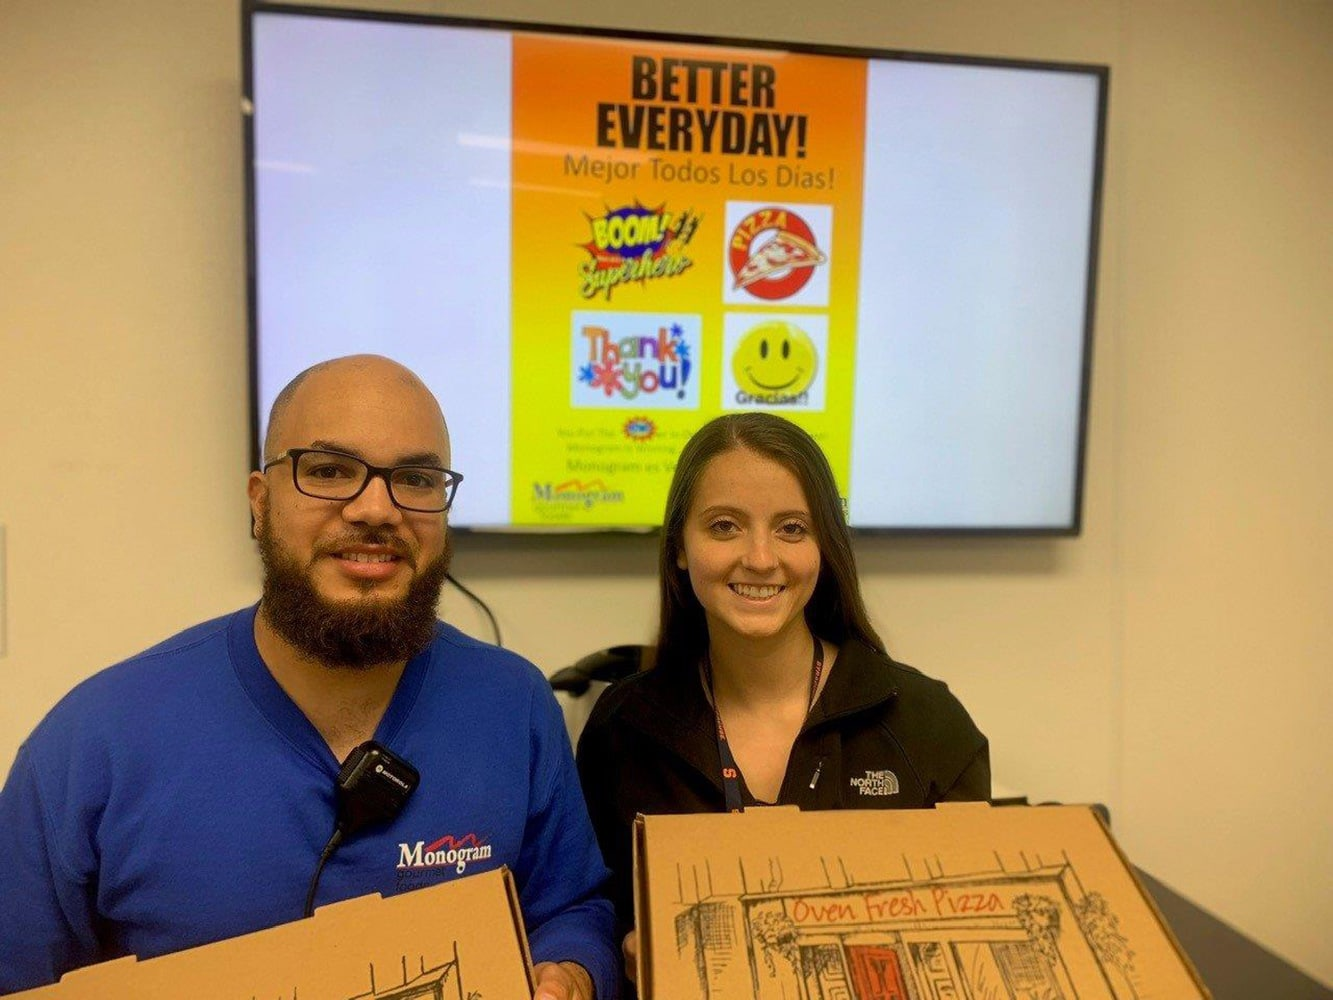 Monogram employees hold pizza boxes during pizza party